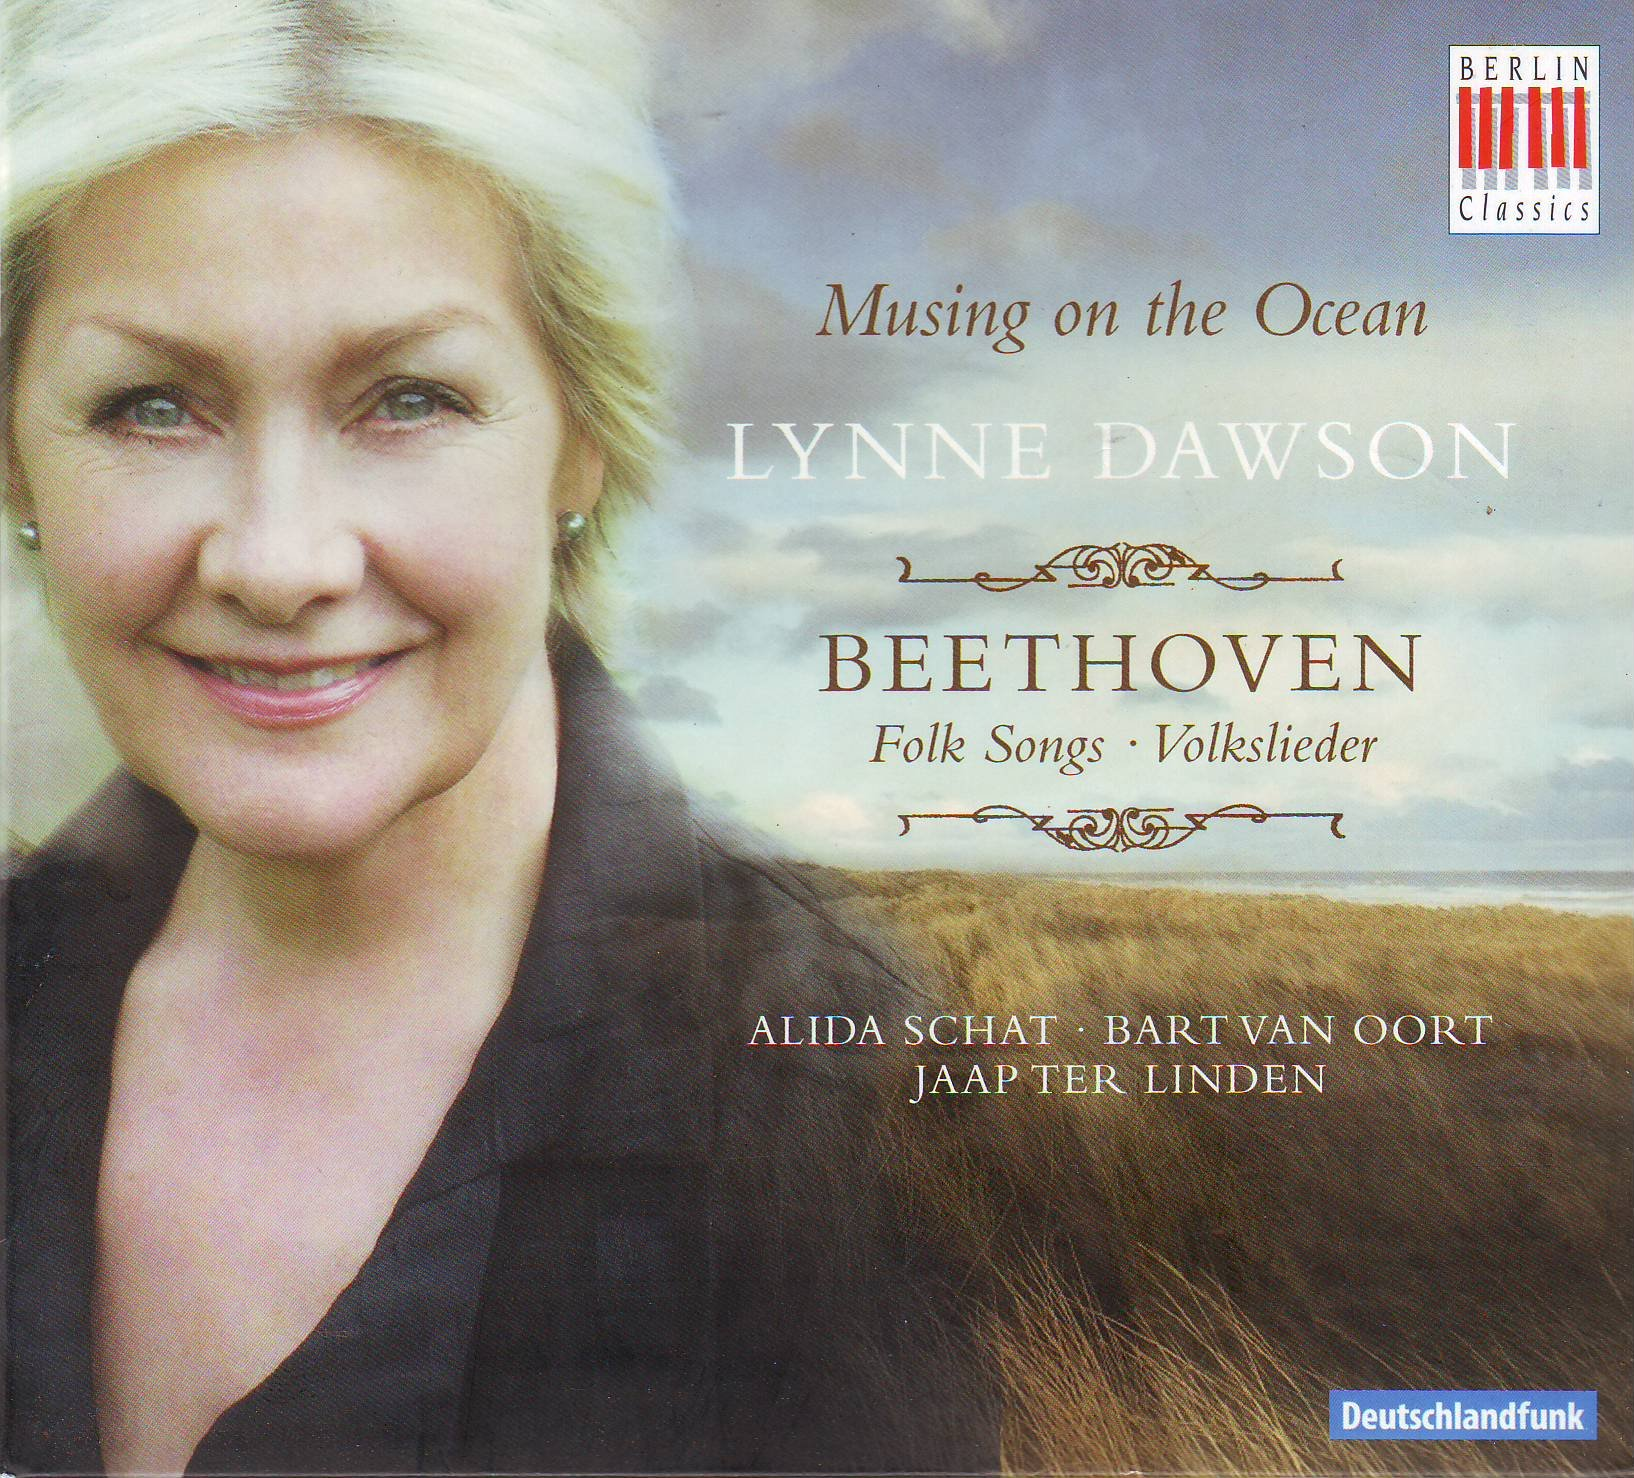 Musing on the Ocean: Beethoven Folk Song Settings